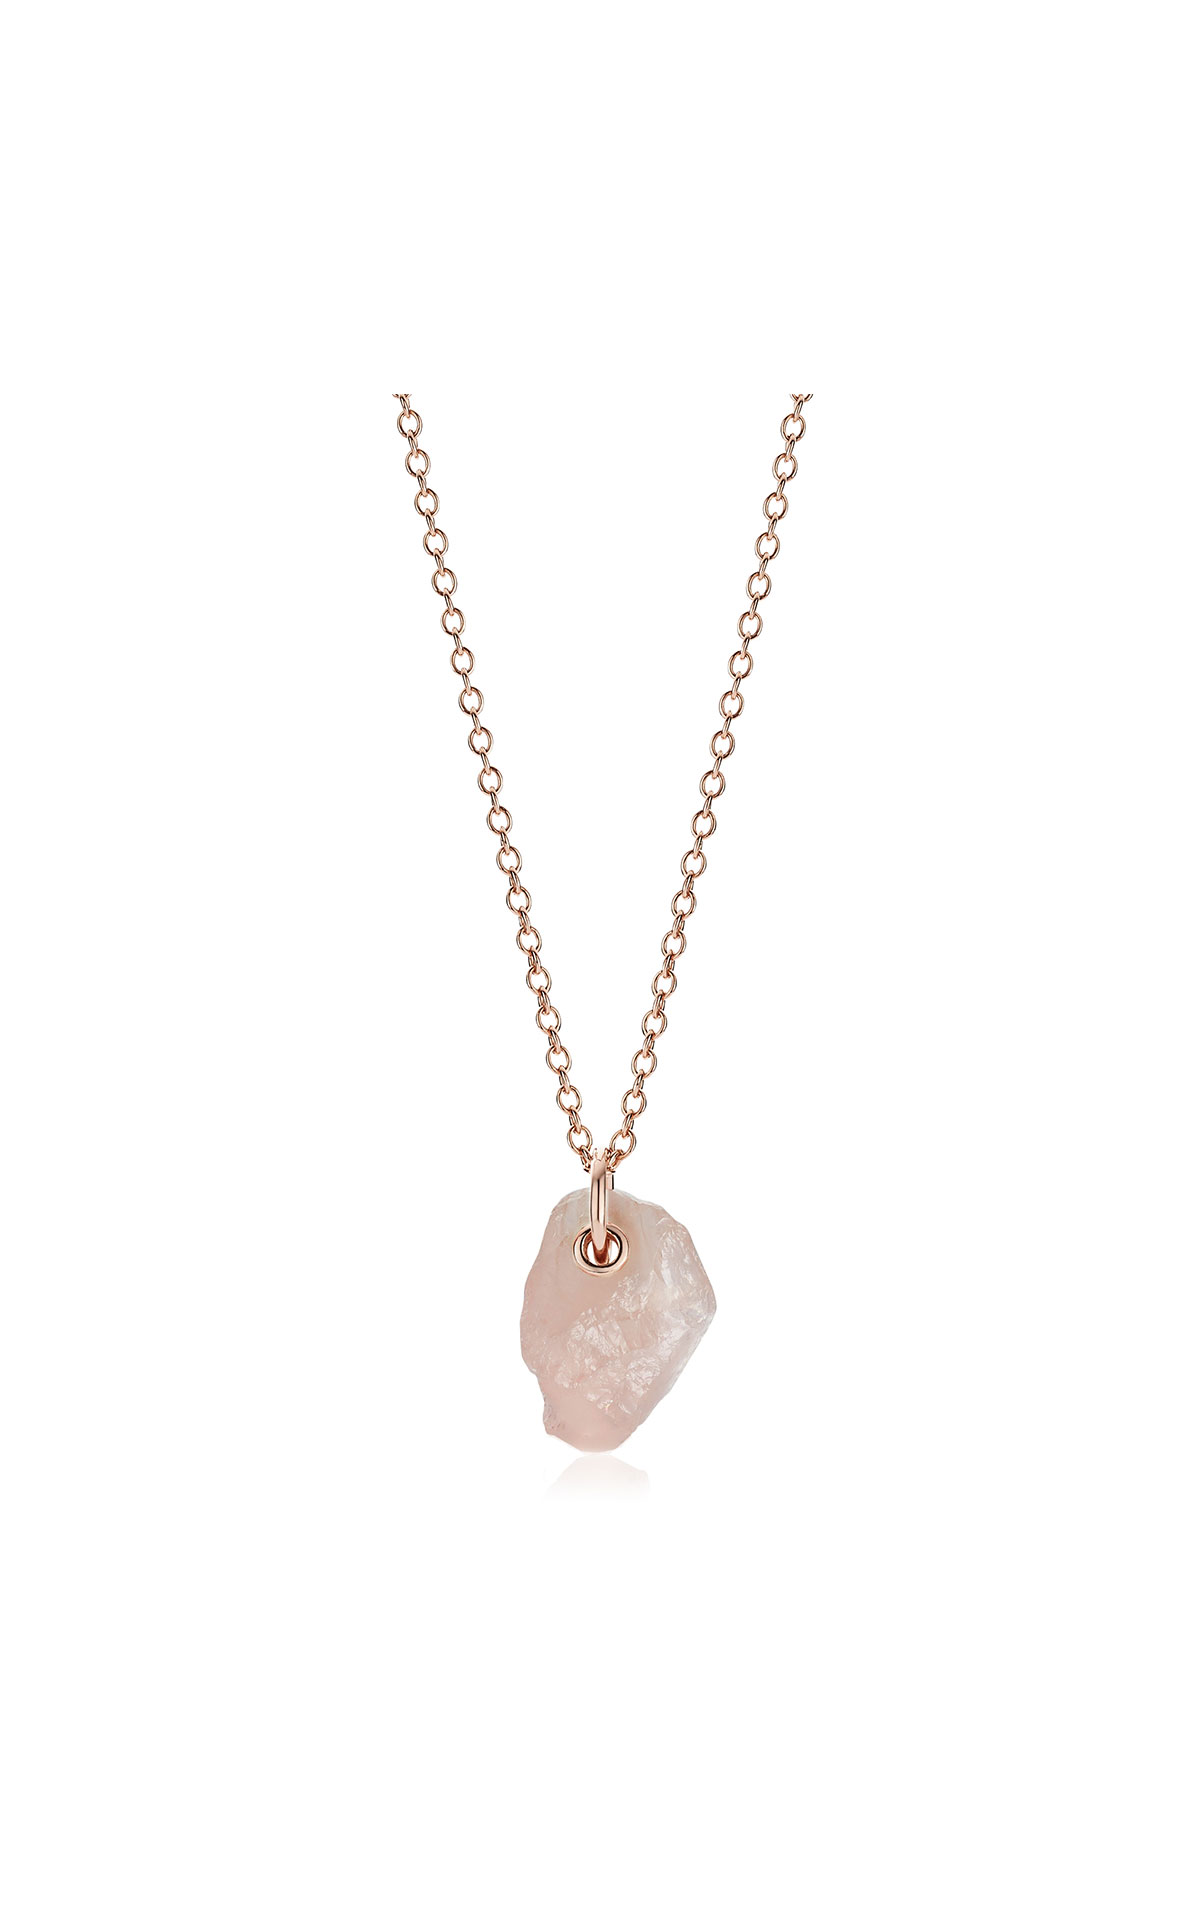 Monica Vinader Rose gold vermeil gemstone large pendant adjustable necklace  - rose quartz from Bicester Village